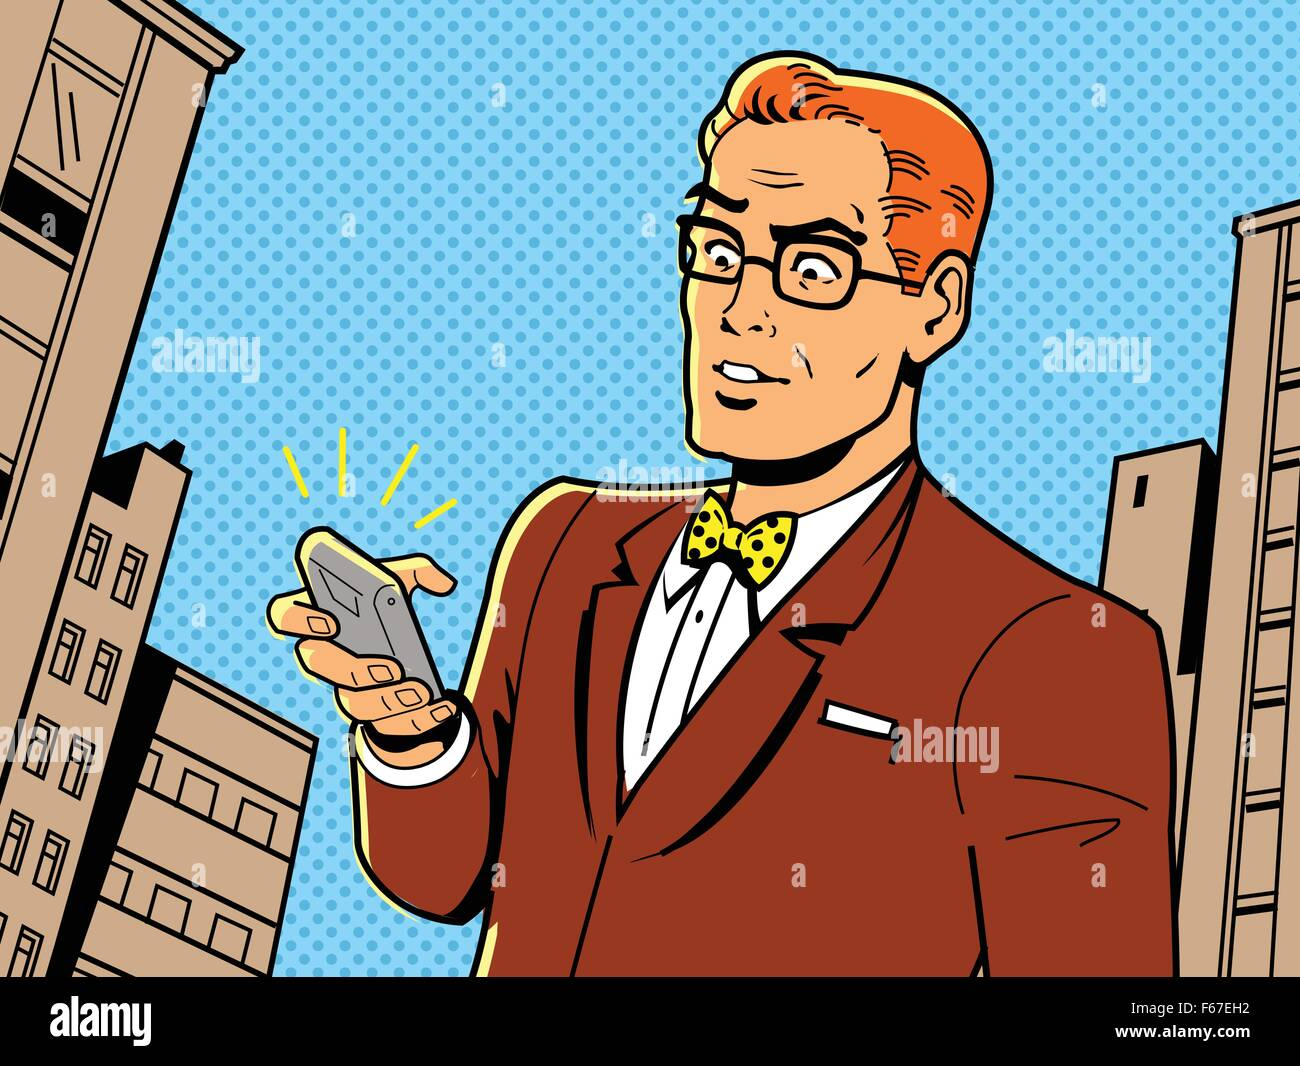 Ironic Illustration of a Retro 1940s or 1950s Man With Glasses, Bow Tie and Modern Smartphone - Stock Vector